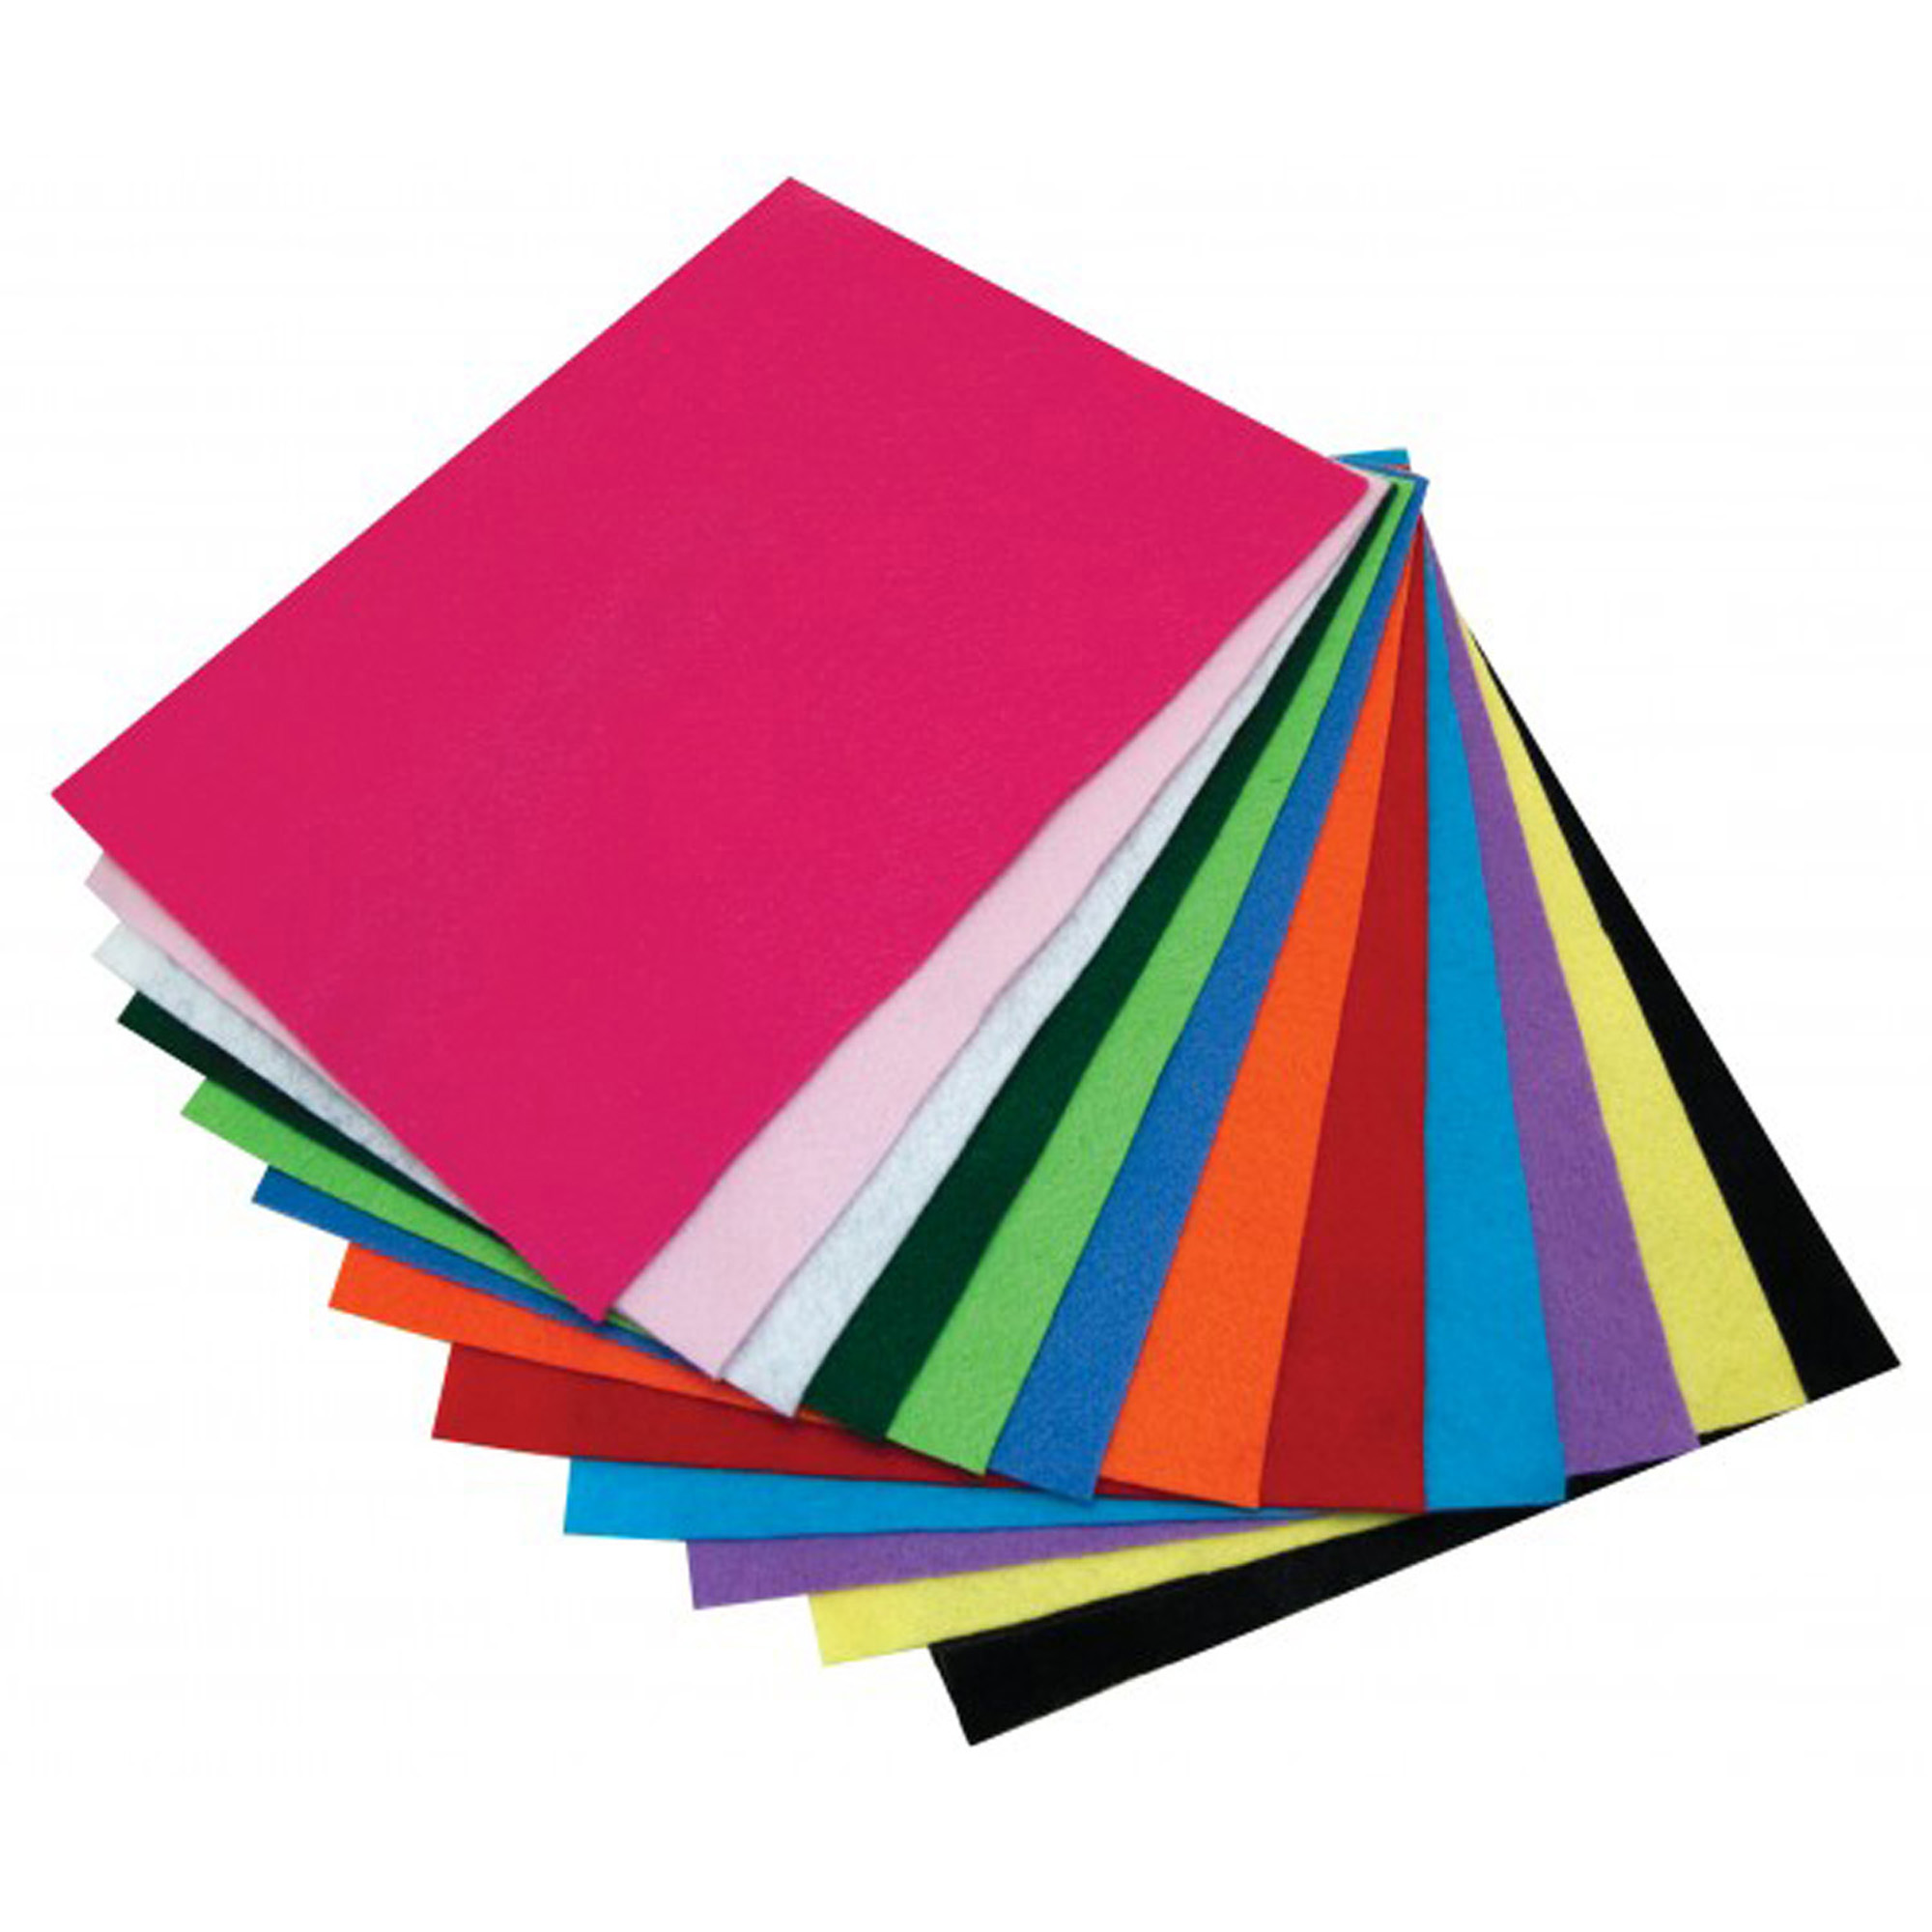 "Craft Felt, 9"" x 12"", 12 Sheets per pack, 4 packs"